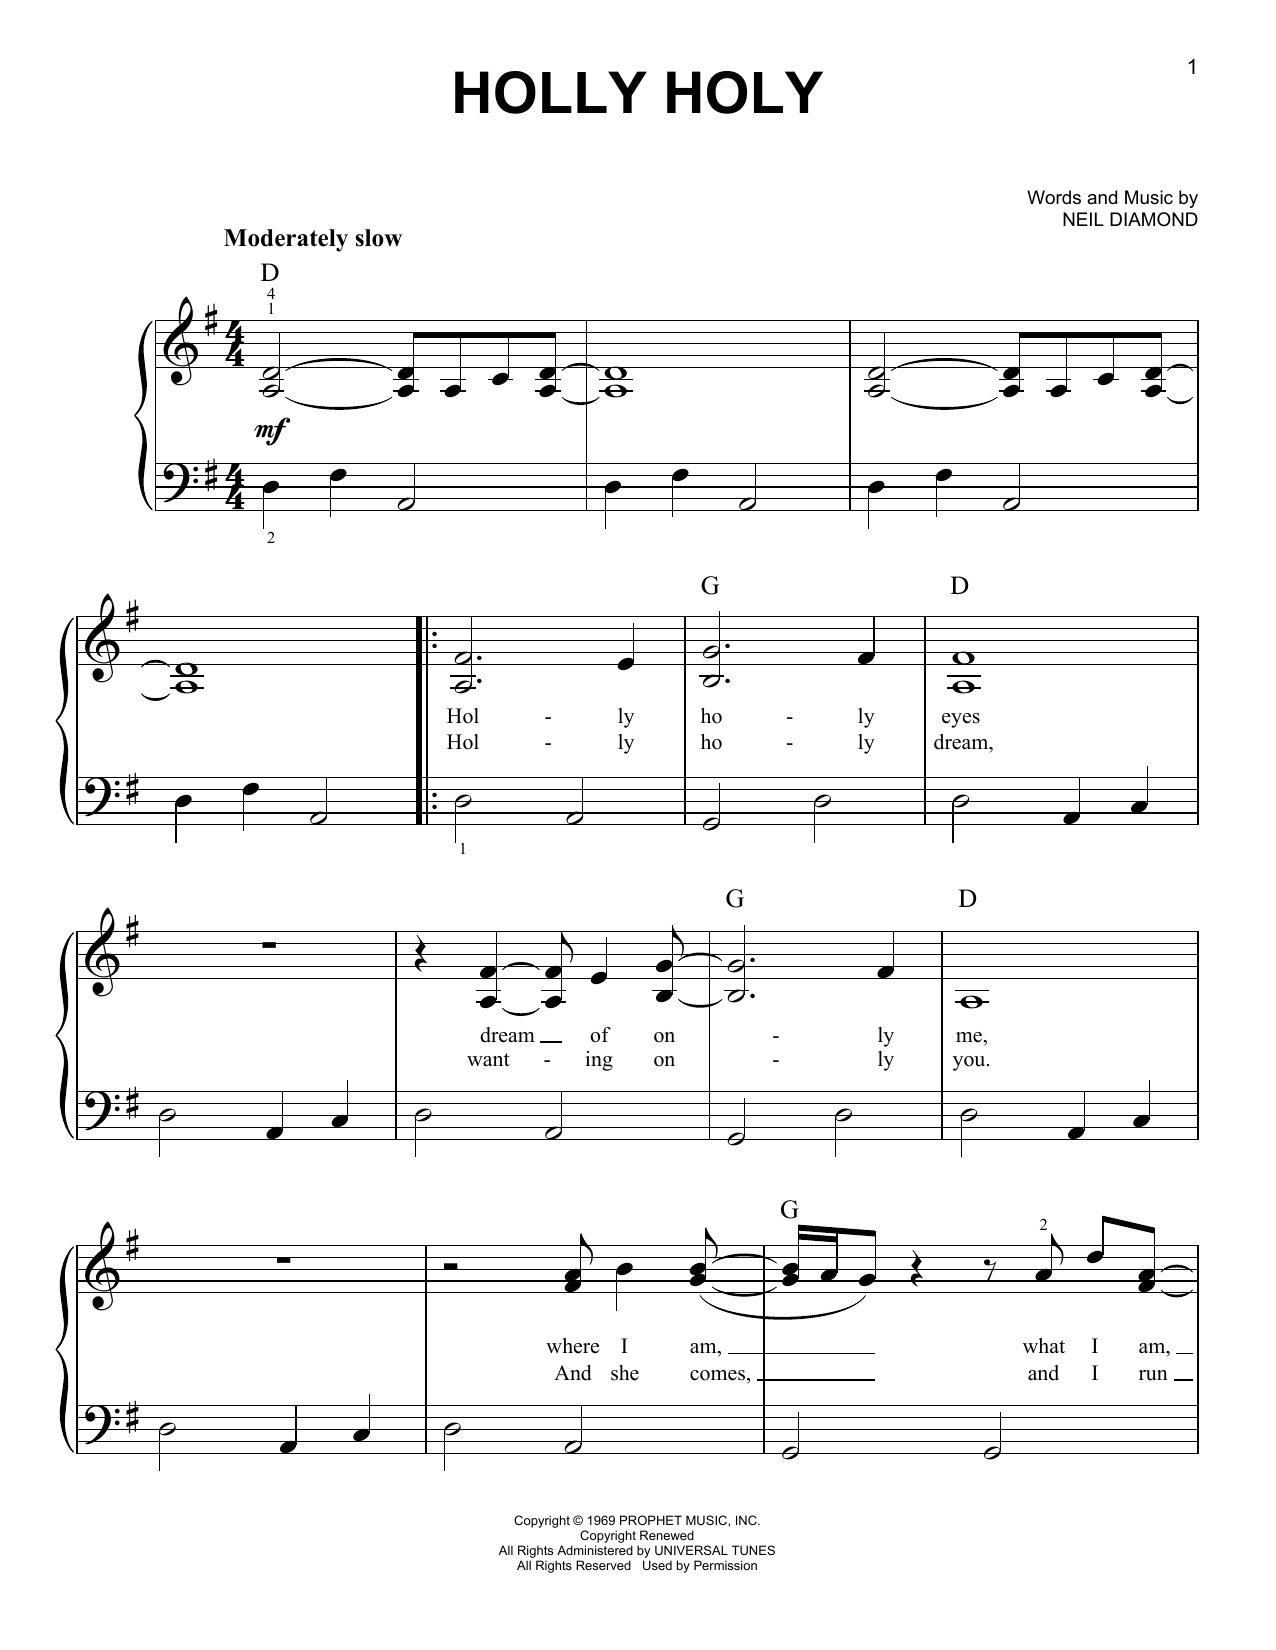 Neil Diamond Holly Holy Sheet Music Notes Chords Printable Rock